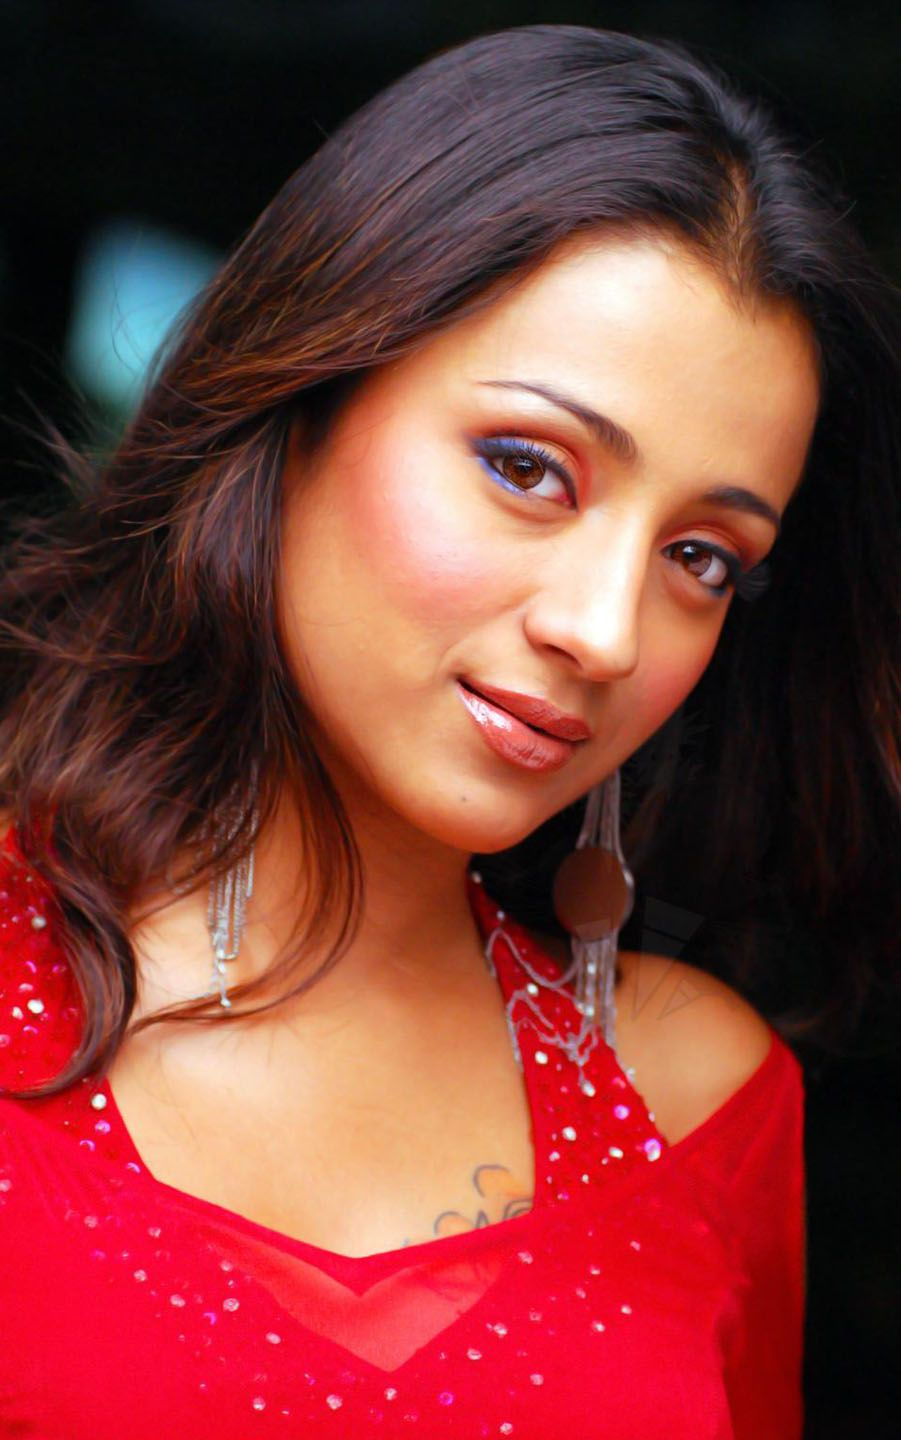 Tamil Actress Trisha hot pic in 2019 Prettiest actresses